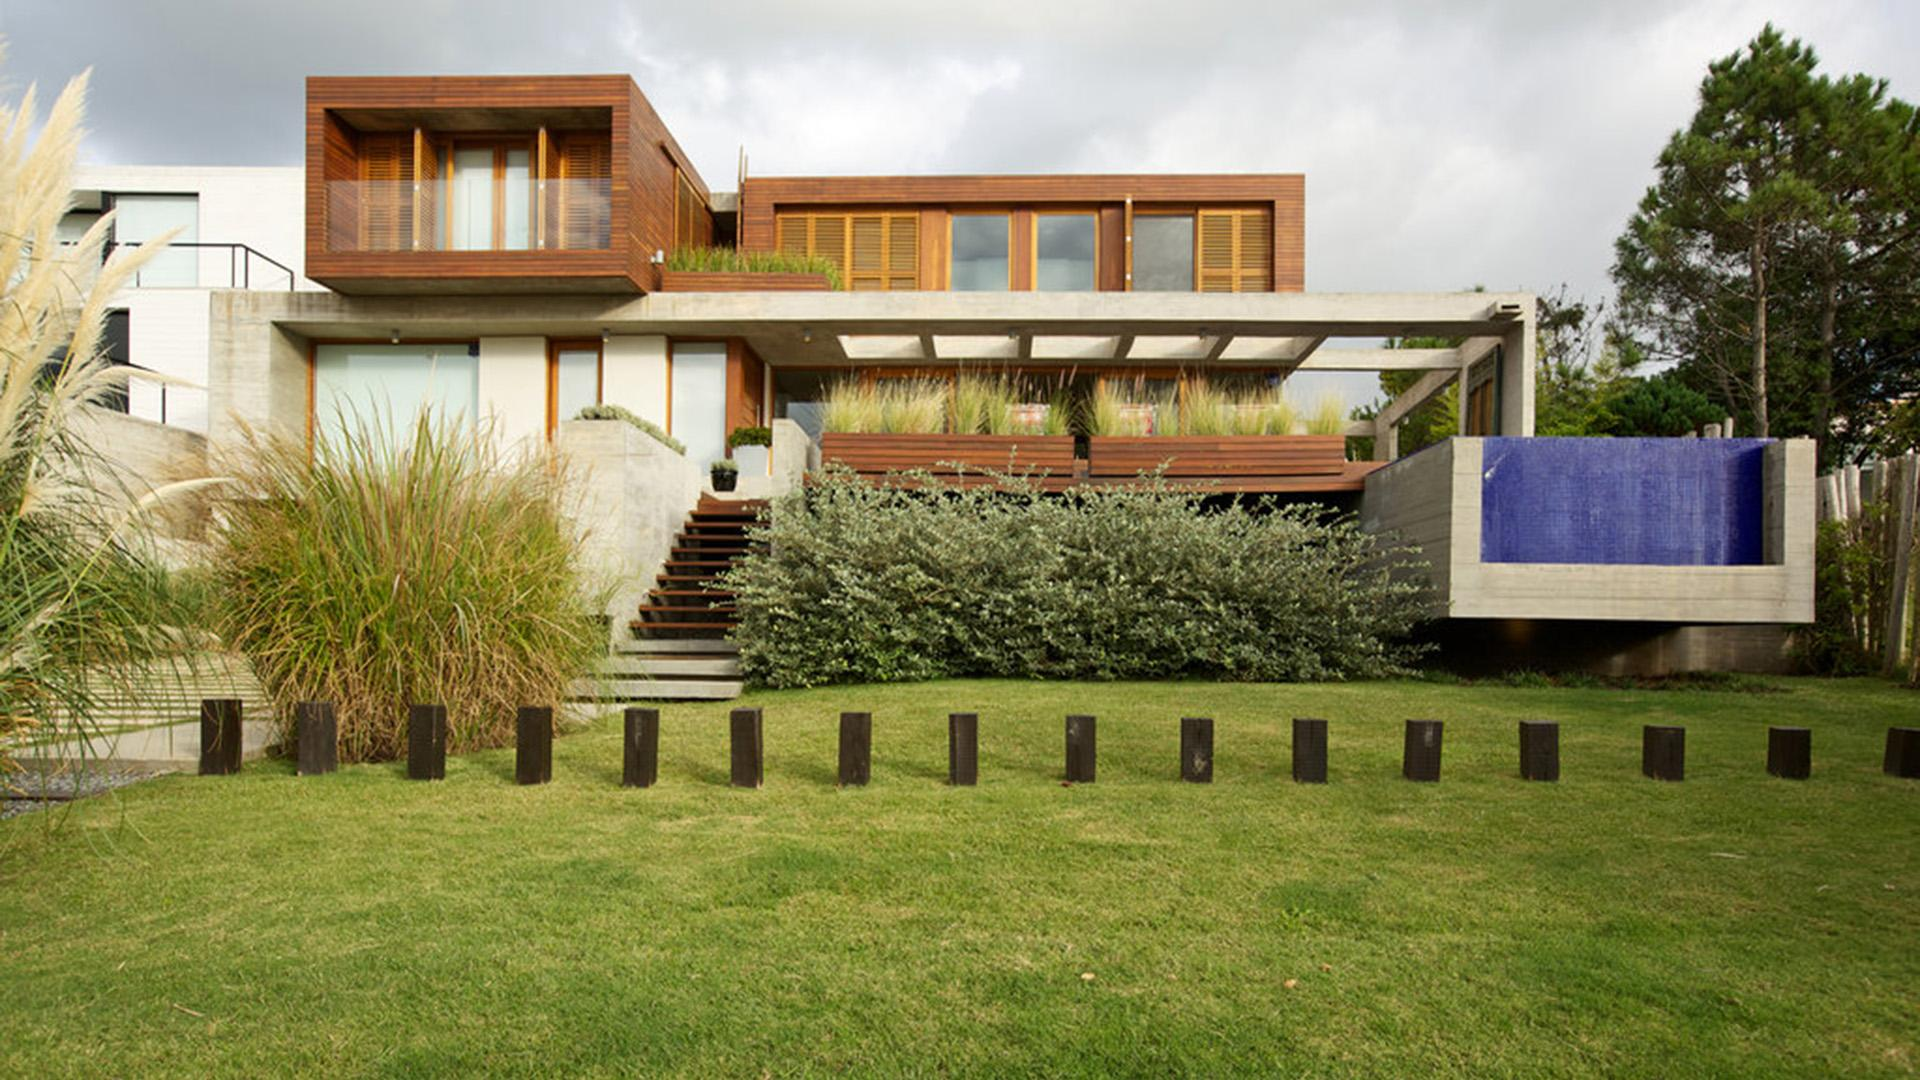 Modern House with Ocean Views located in El Chorro, Punta del Este, Uruguay, listed by Curiocity Villas.